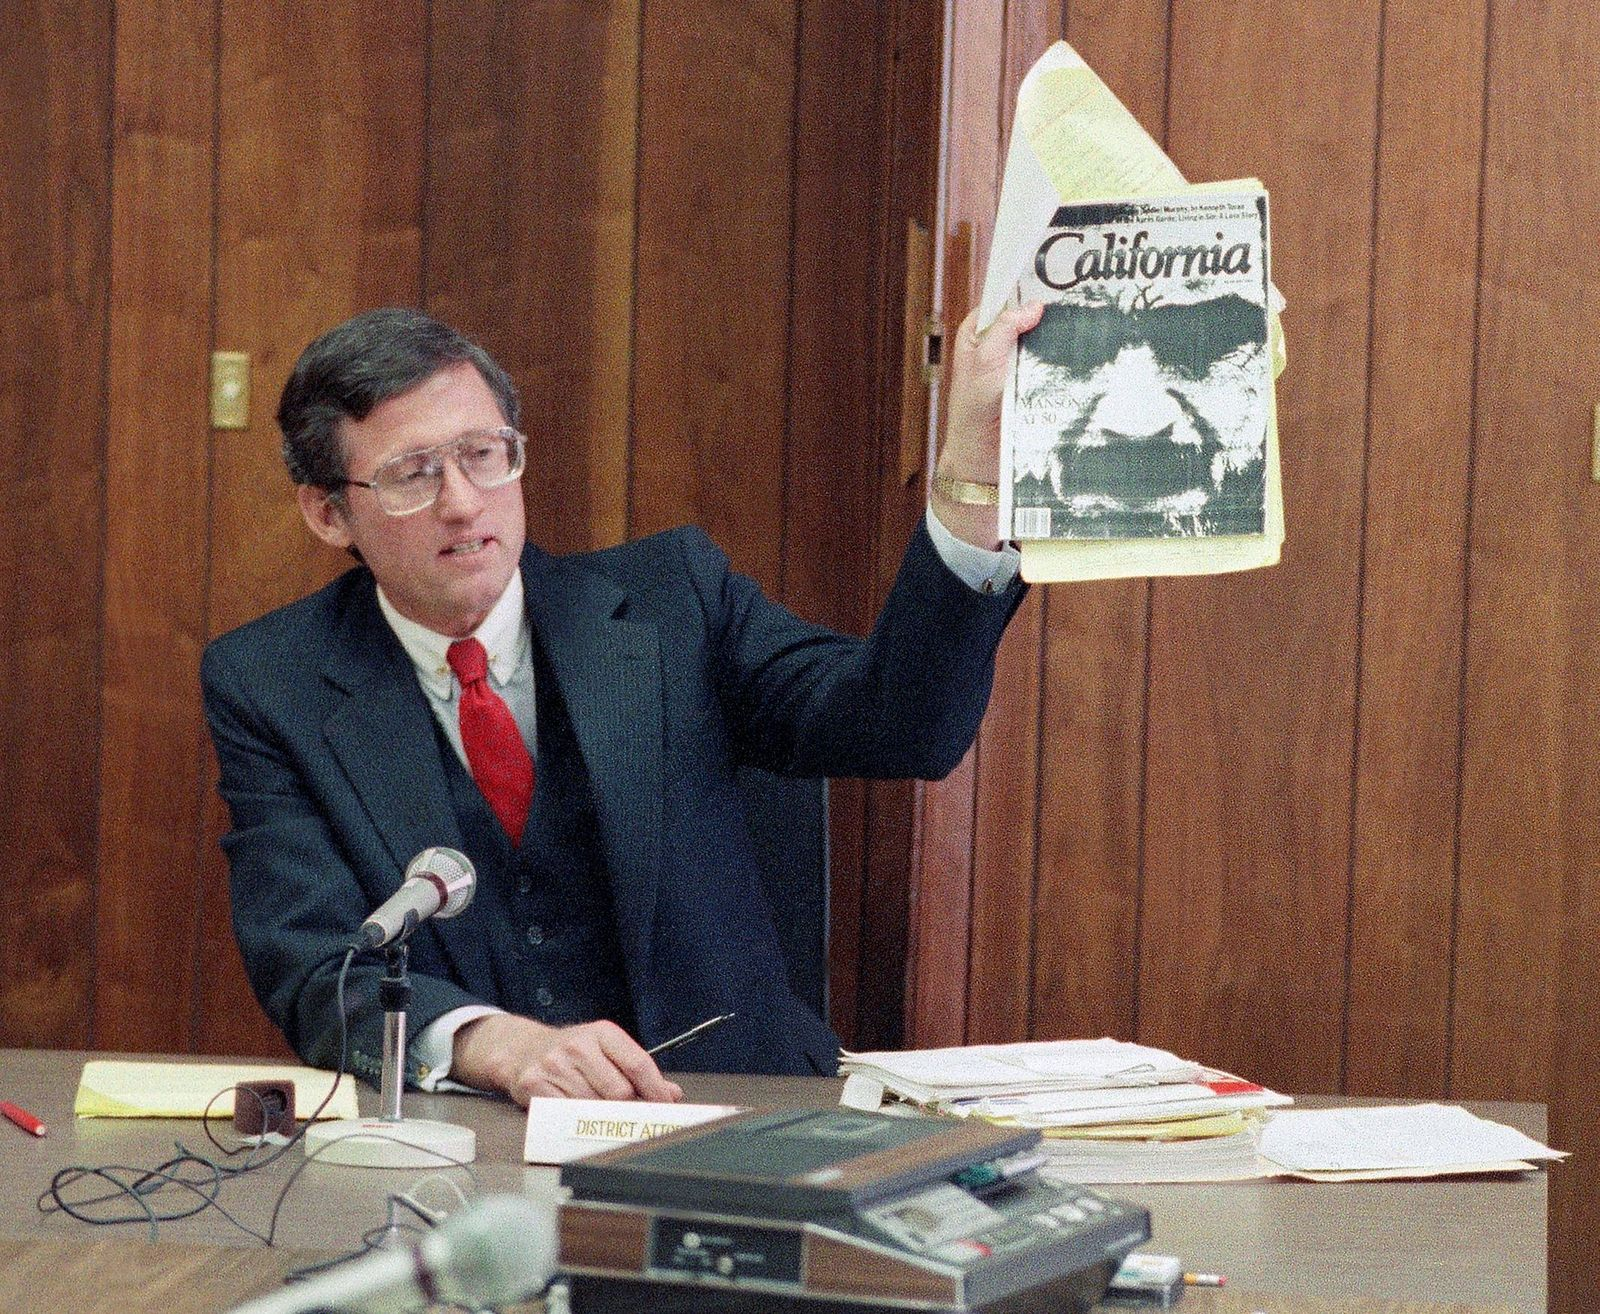 FILE - In this Feb. 9, 1989 file photo, Los Angeles Deputy District Attorney Stephen Kay holds up a magazine profiling convicted murderer Charles Manson while delivering his closing statement at Manson's parole hearing at San Quentin Prison, Calif.{ } (AP Photo/Eric Risberg, File)